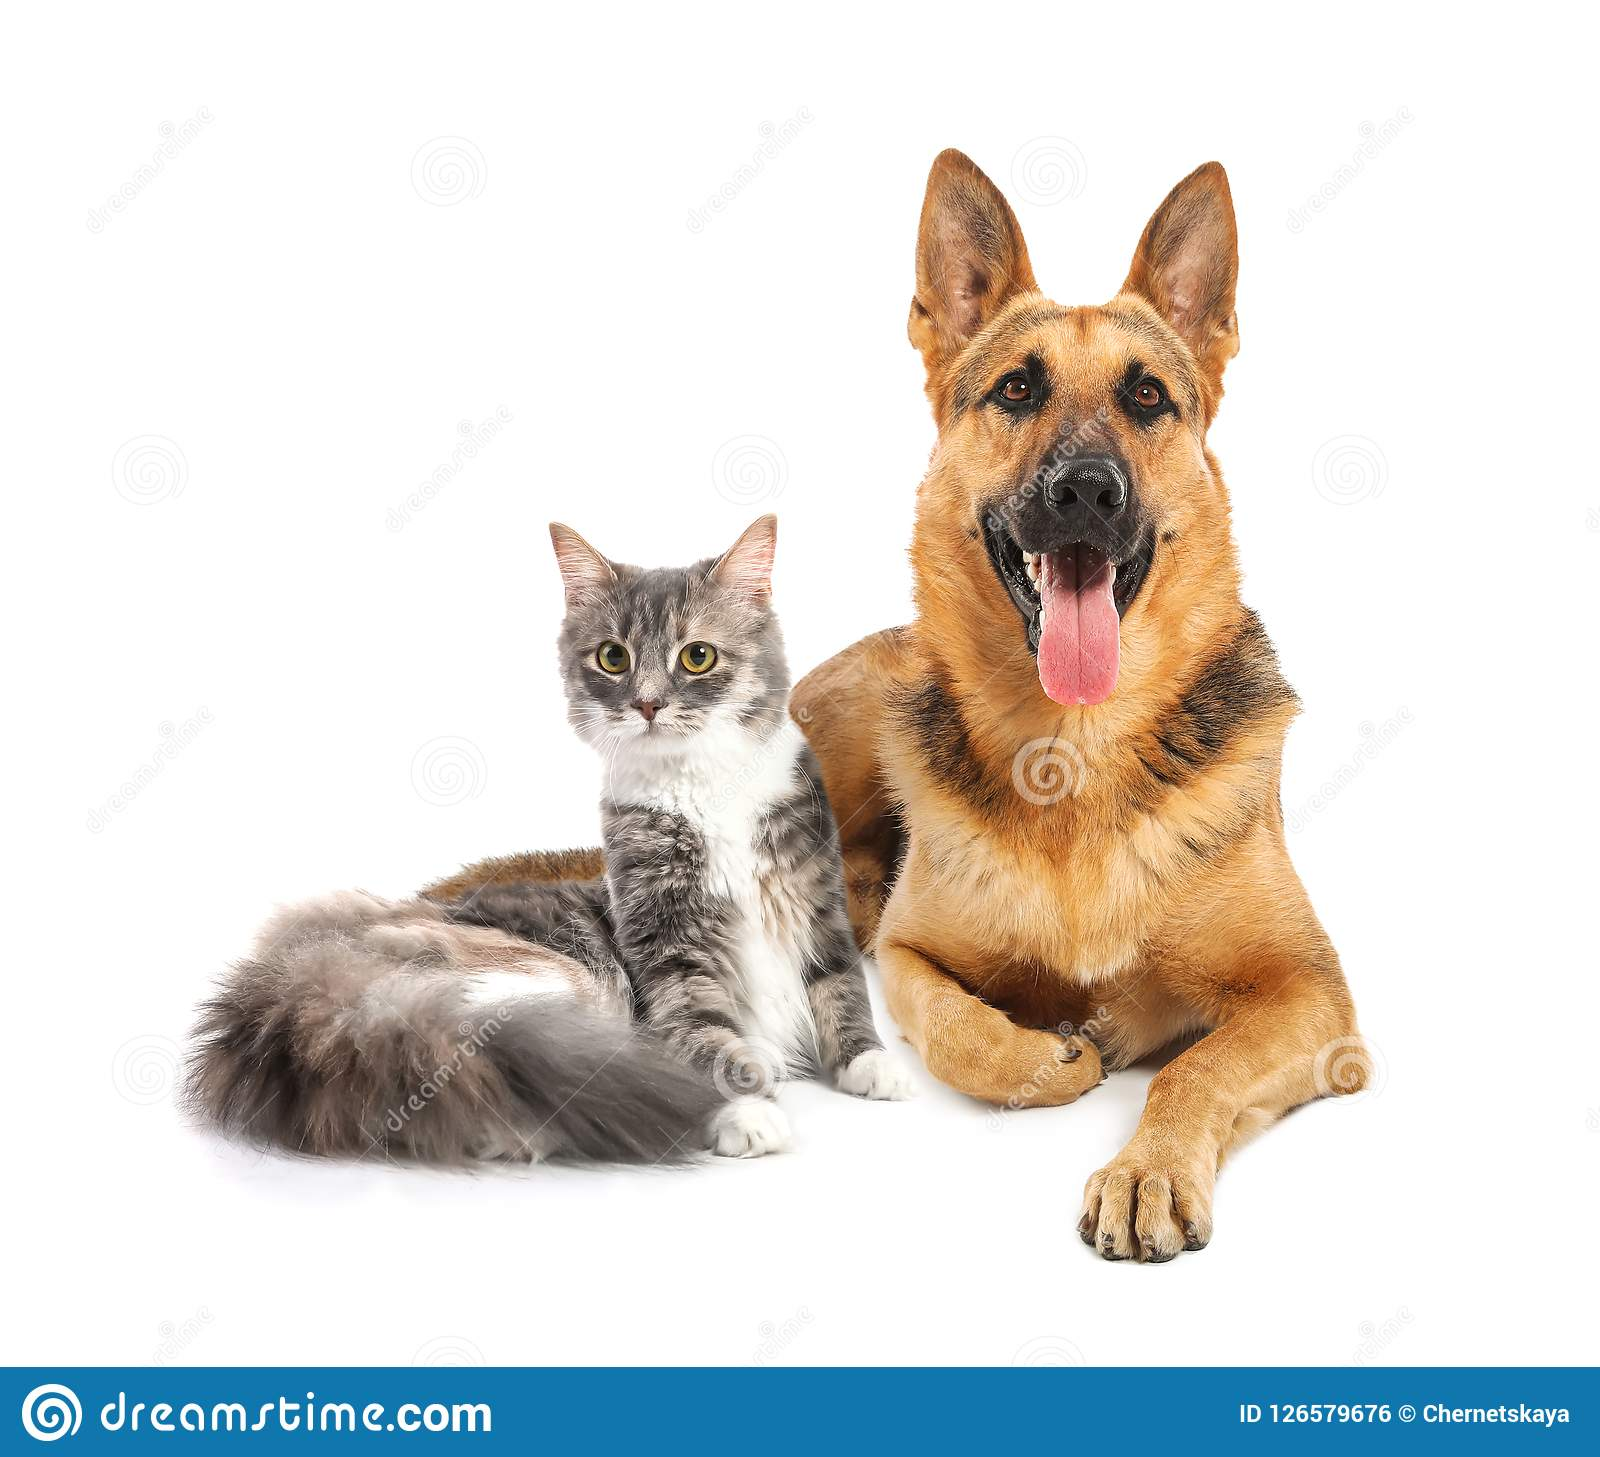 Cute Cat And Dog Together On White Background Stock Photo Image Of